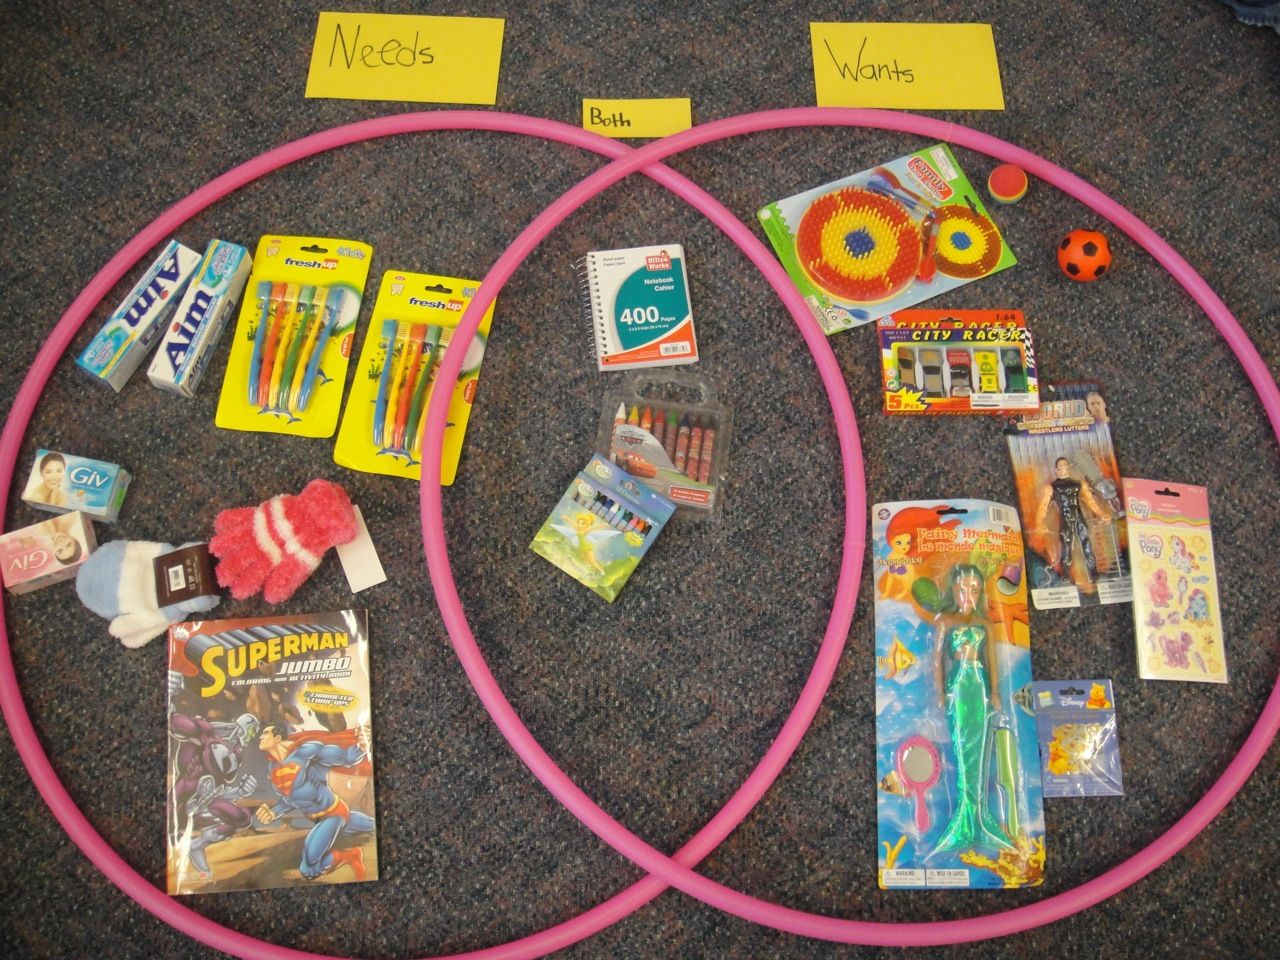 Needs And Wants Venn Diagram Wiring Symbols House Vs I Would Use Different Items In The Section But Like Hands On